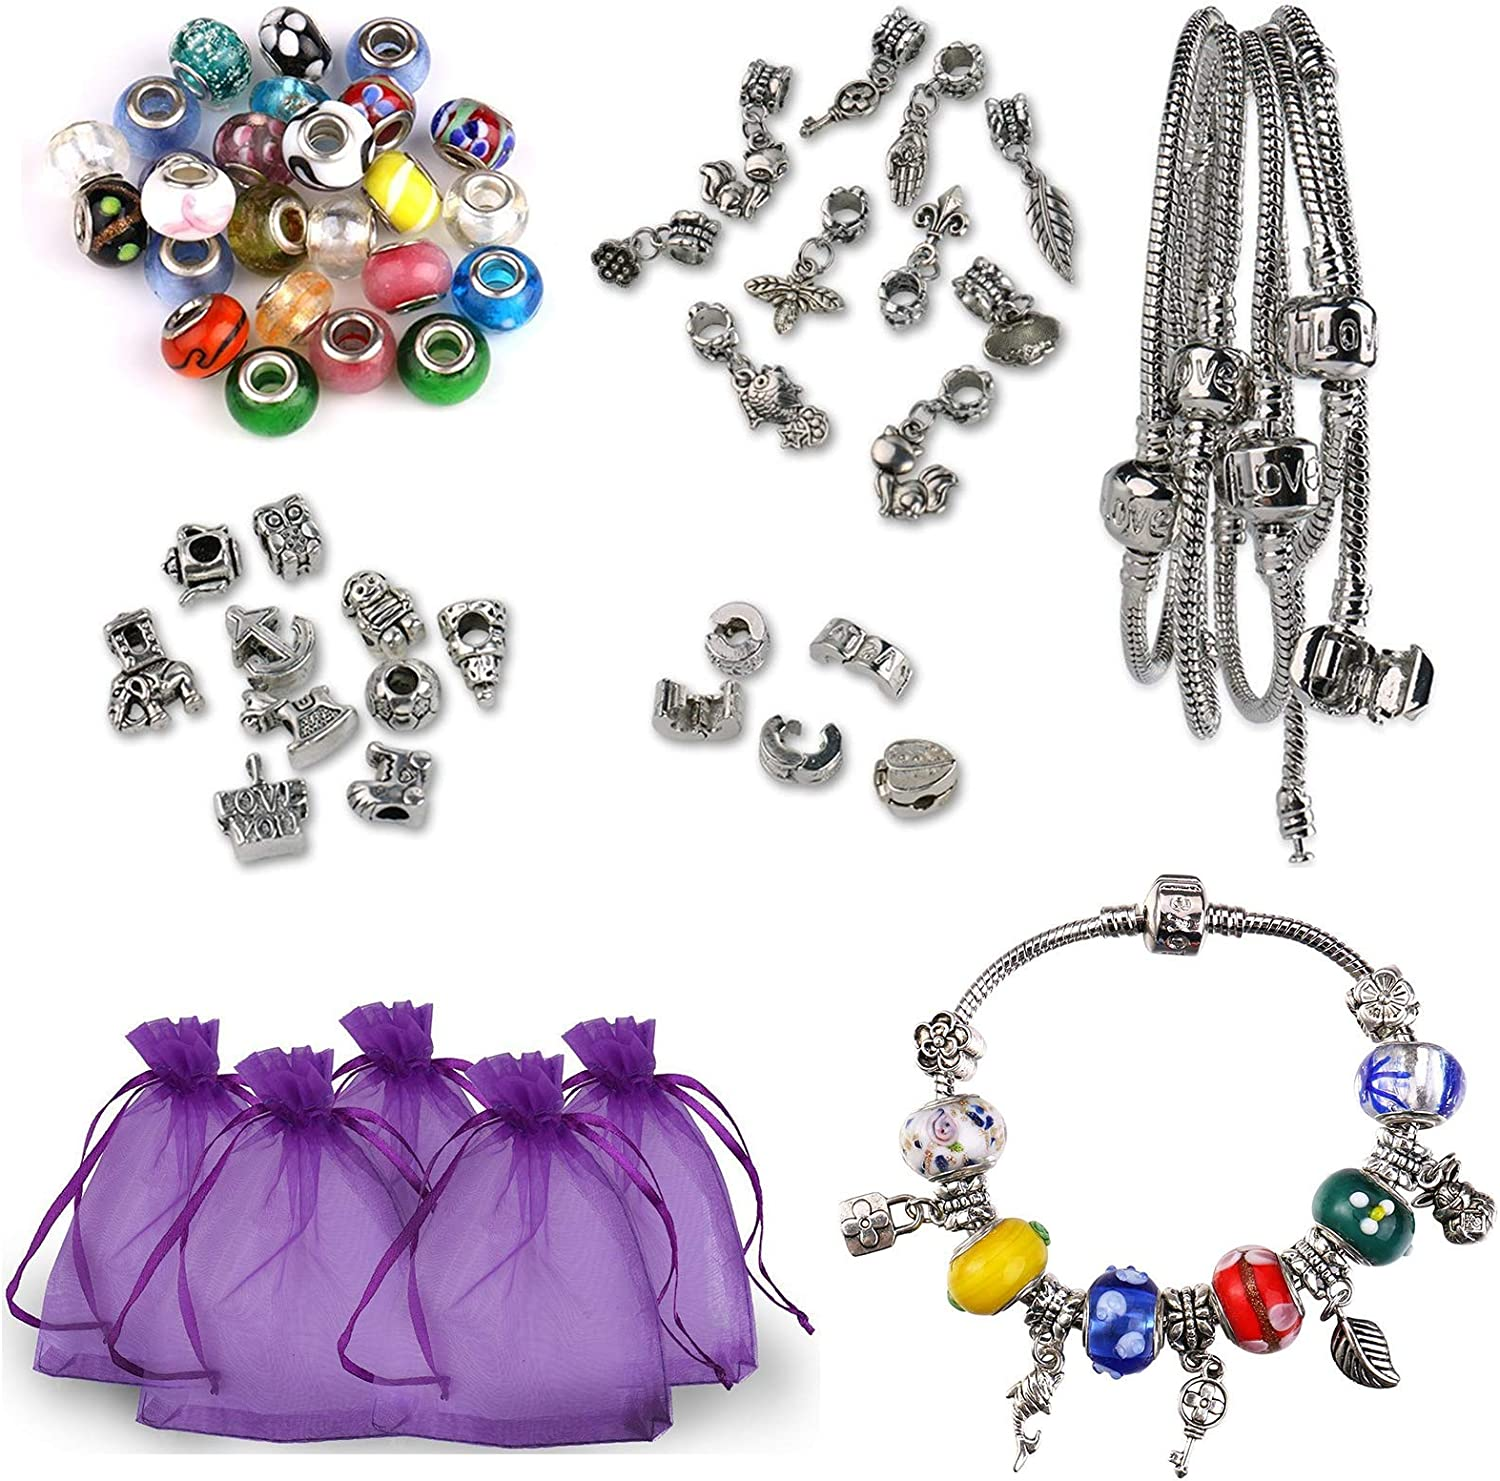 Luxbon 5 x Handmade European Styles Charm Bracelets Making Kit Murano Glass Bead Silver Plated Snake Chain Bracelet for Womens Girls Party Jewelry DIY Gift